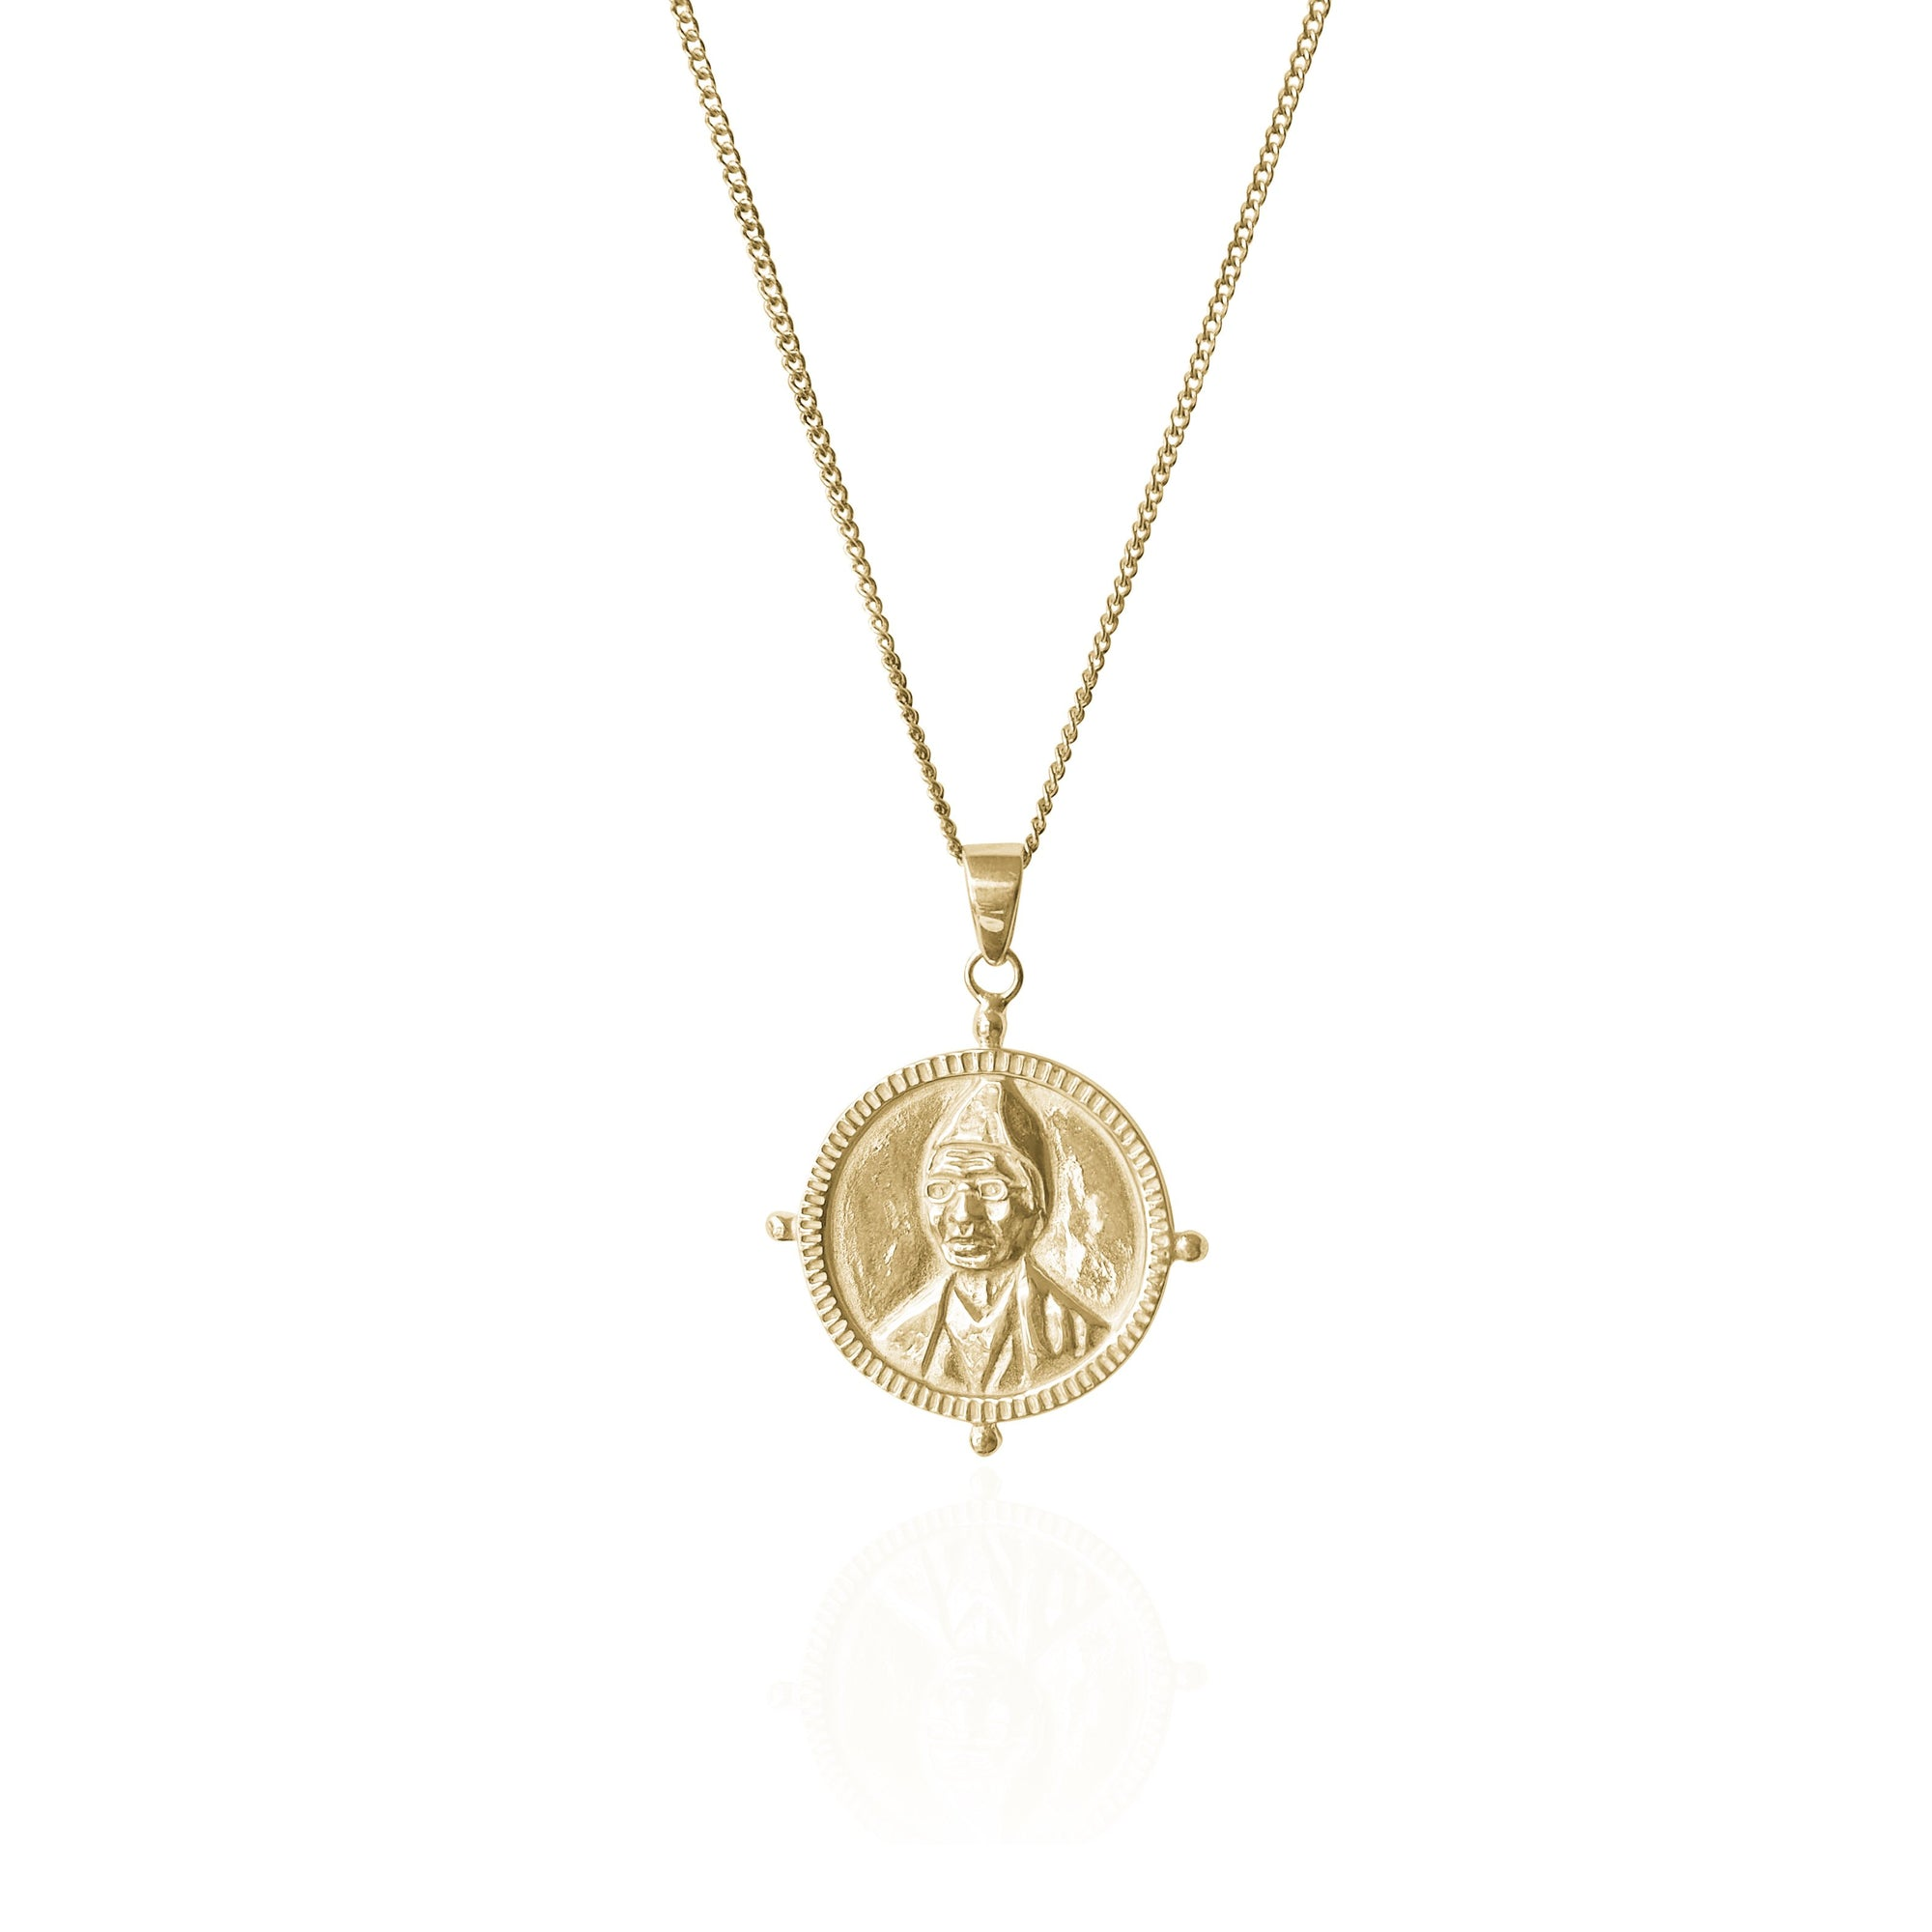 SOJOURNER TRUTH Motherhood Strength Hopi Symbol Necklace in 18kt Gold